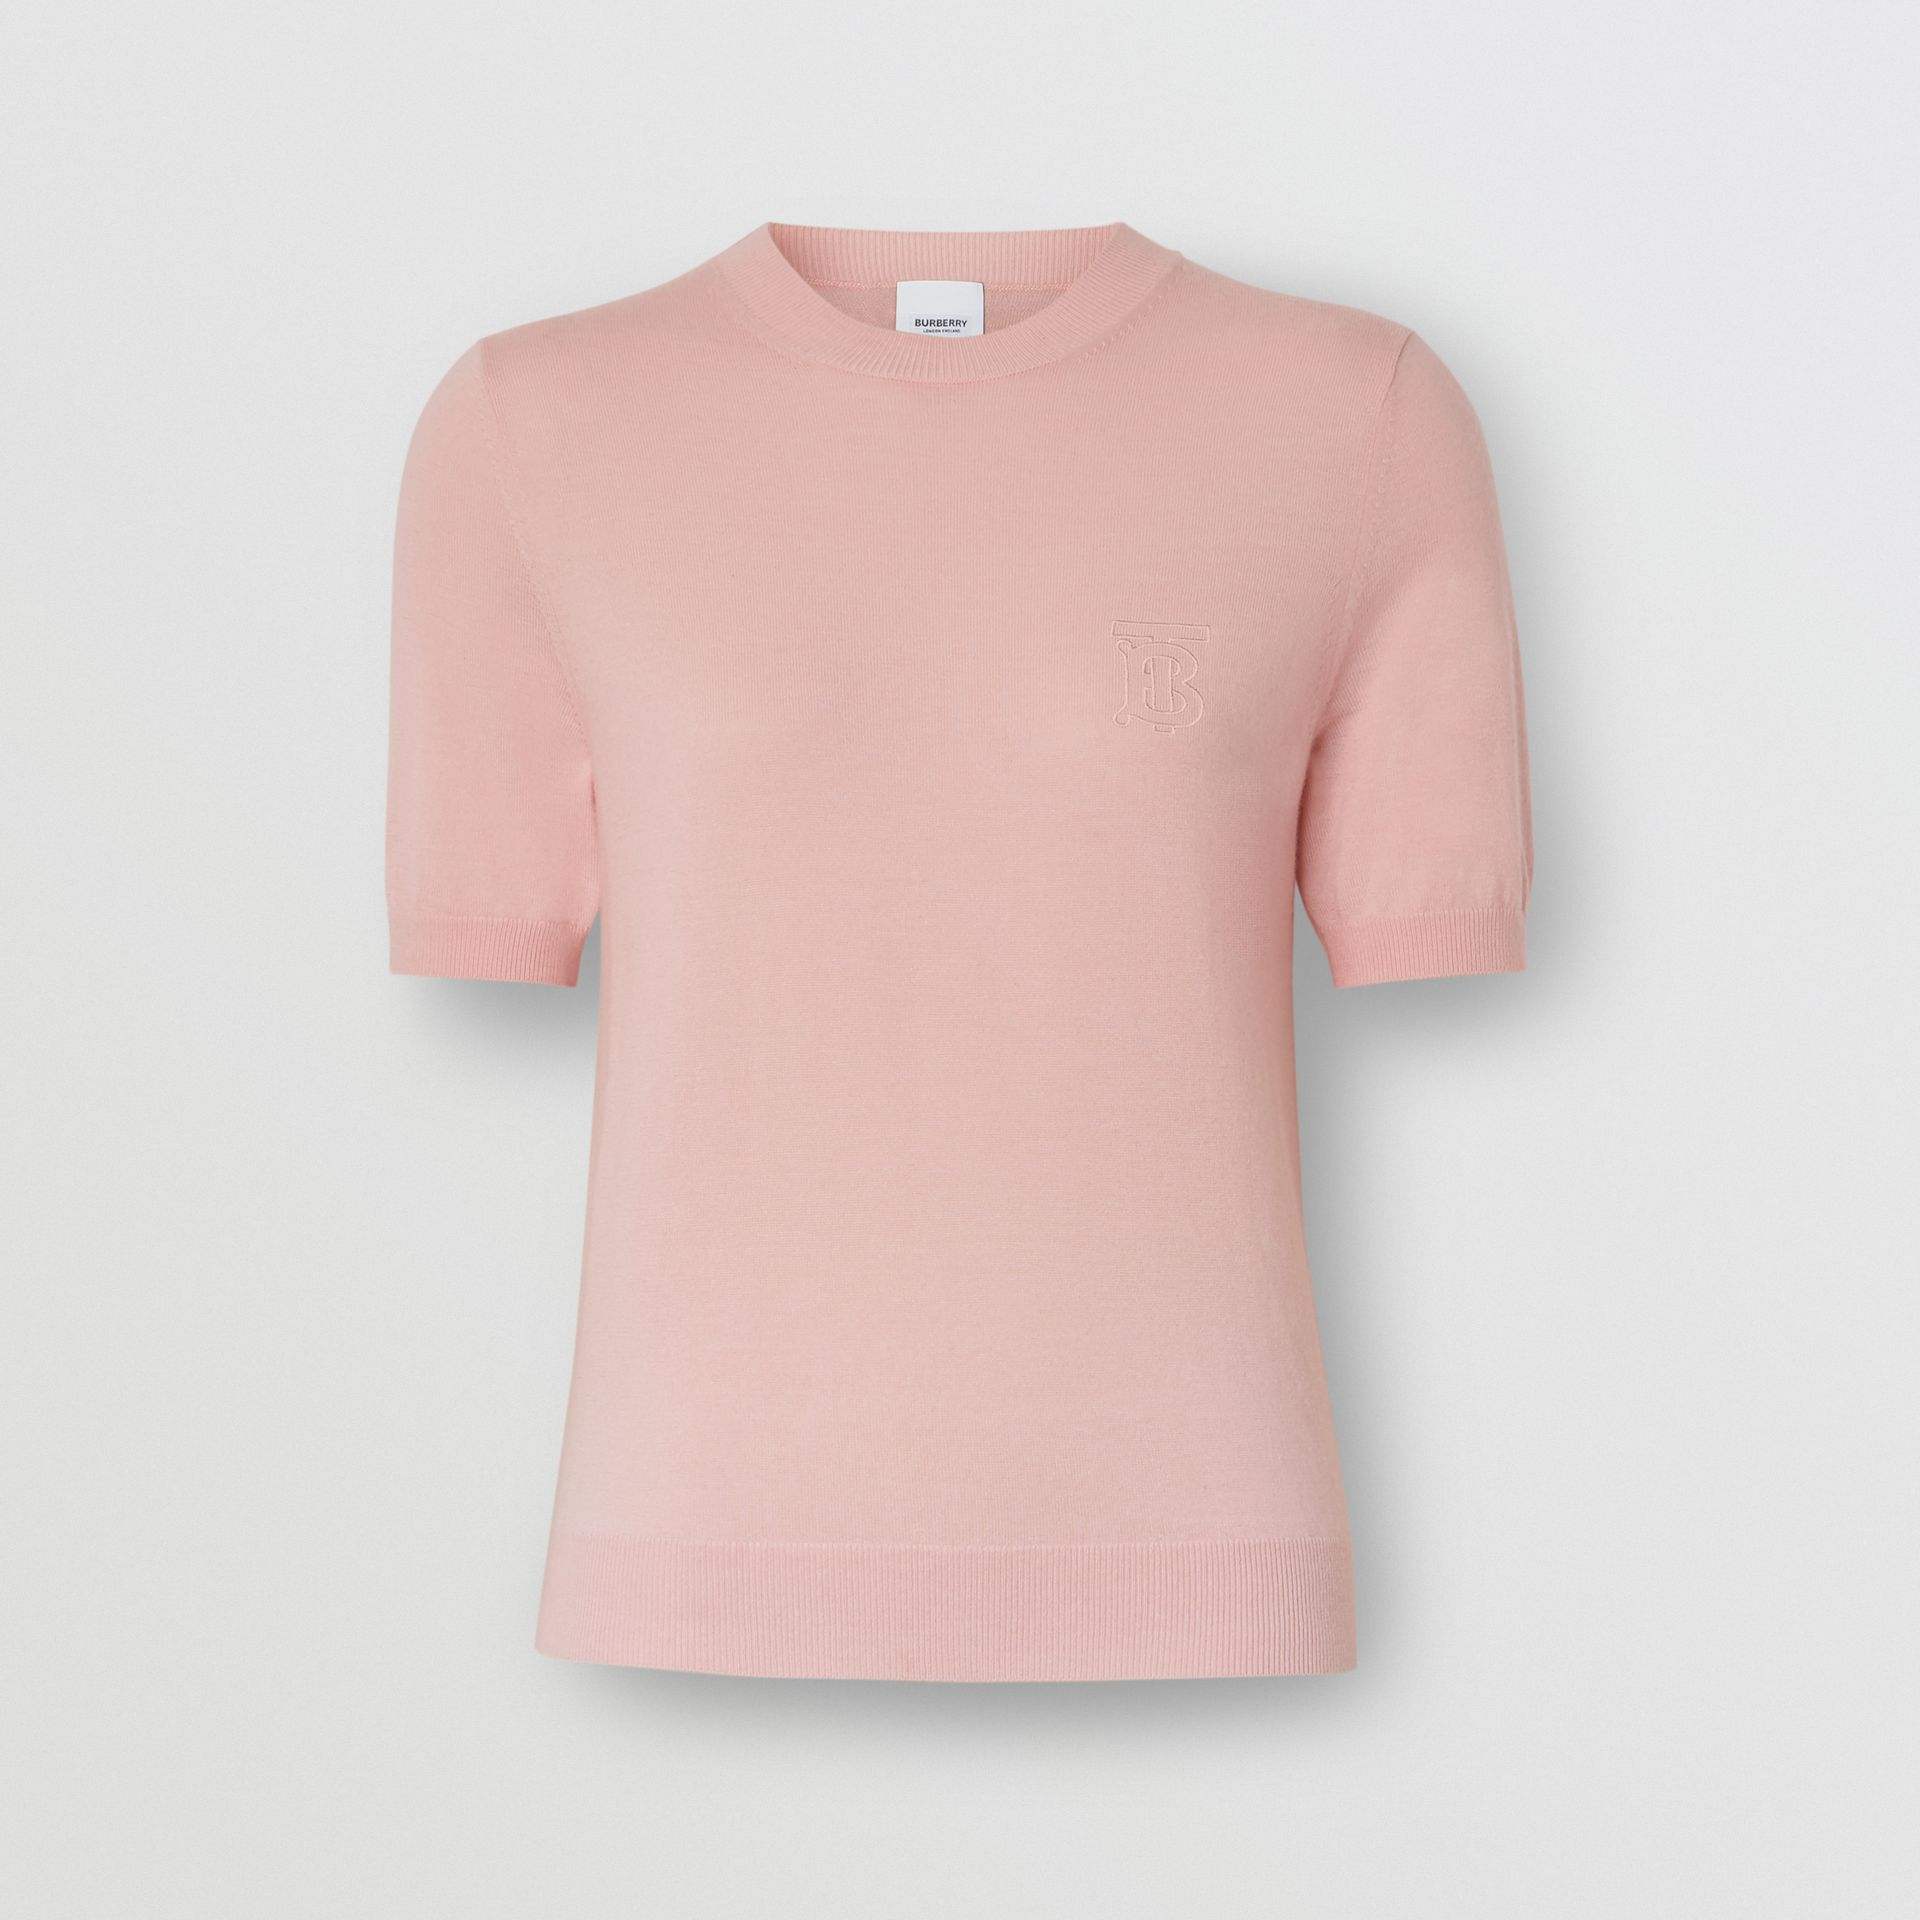 Monogram Motif Cashmere Top in Pink - Women | Burberry Canada - gallery image 3